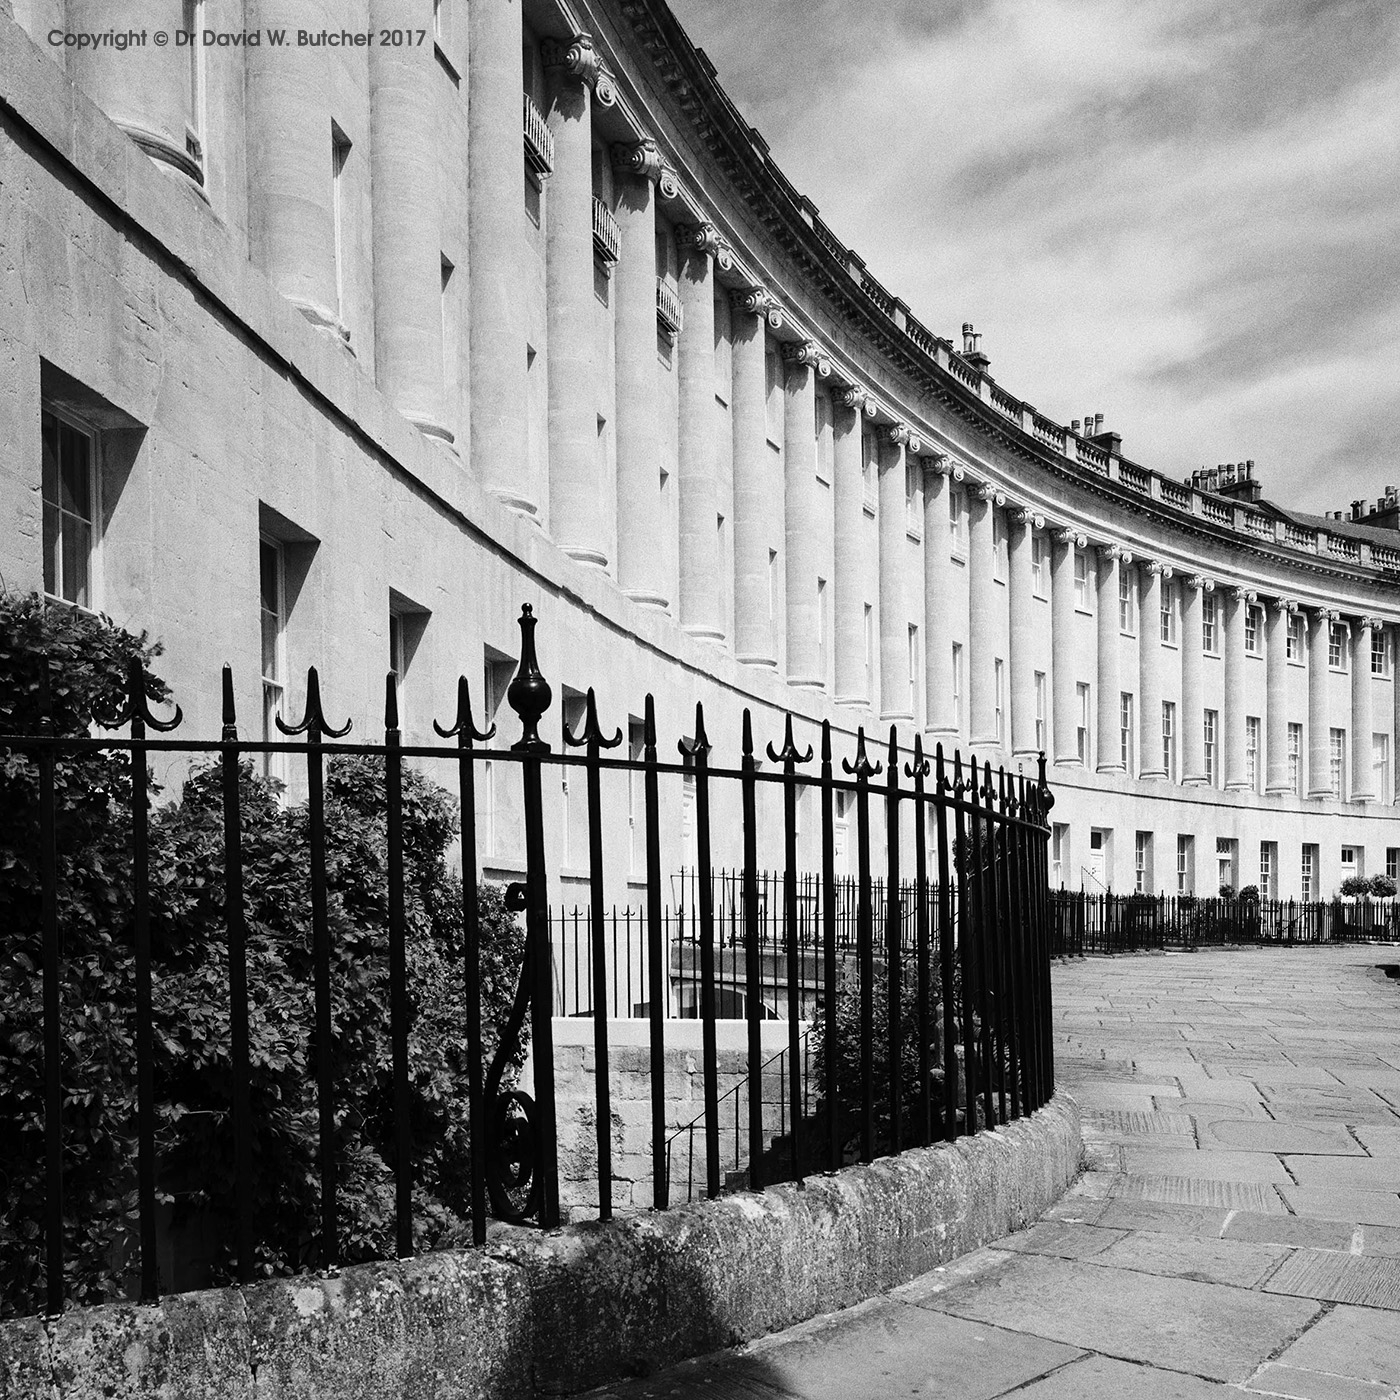 Bath Crescent and Railings, England